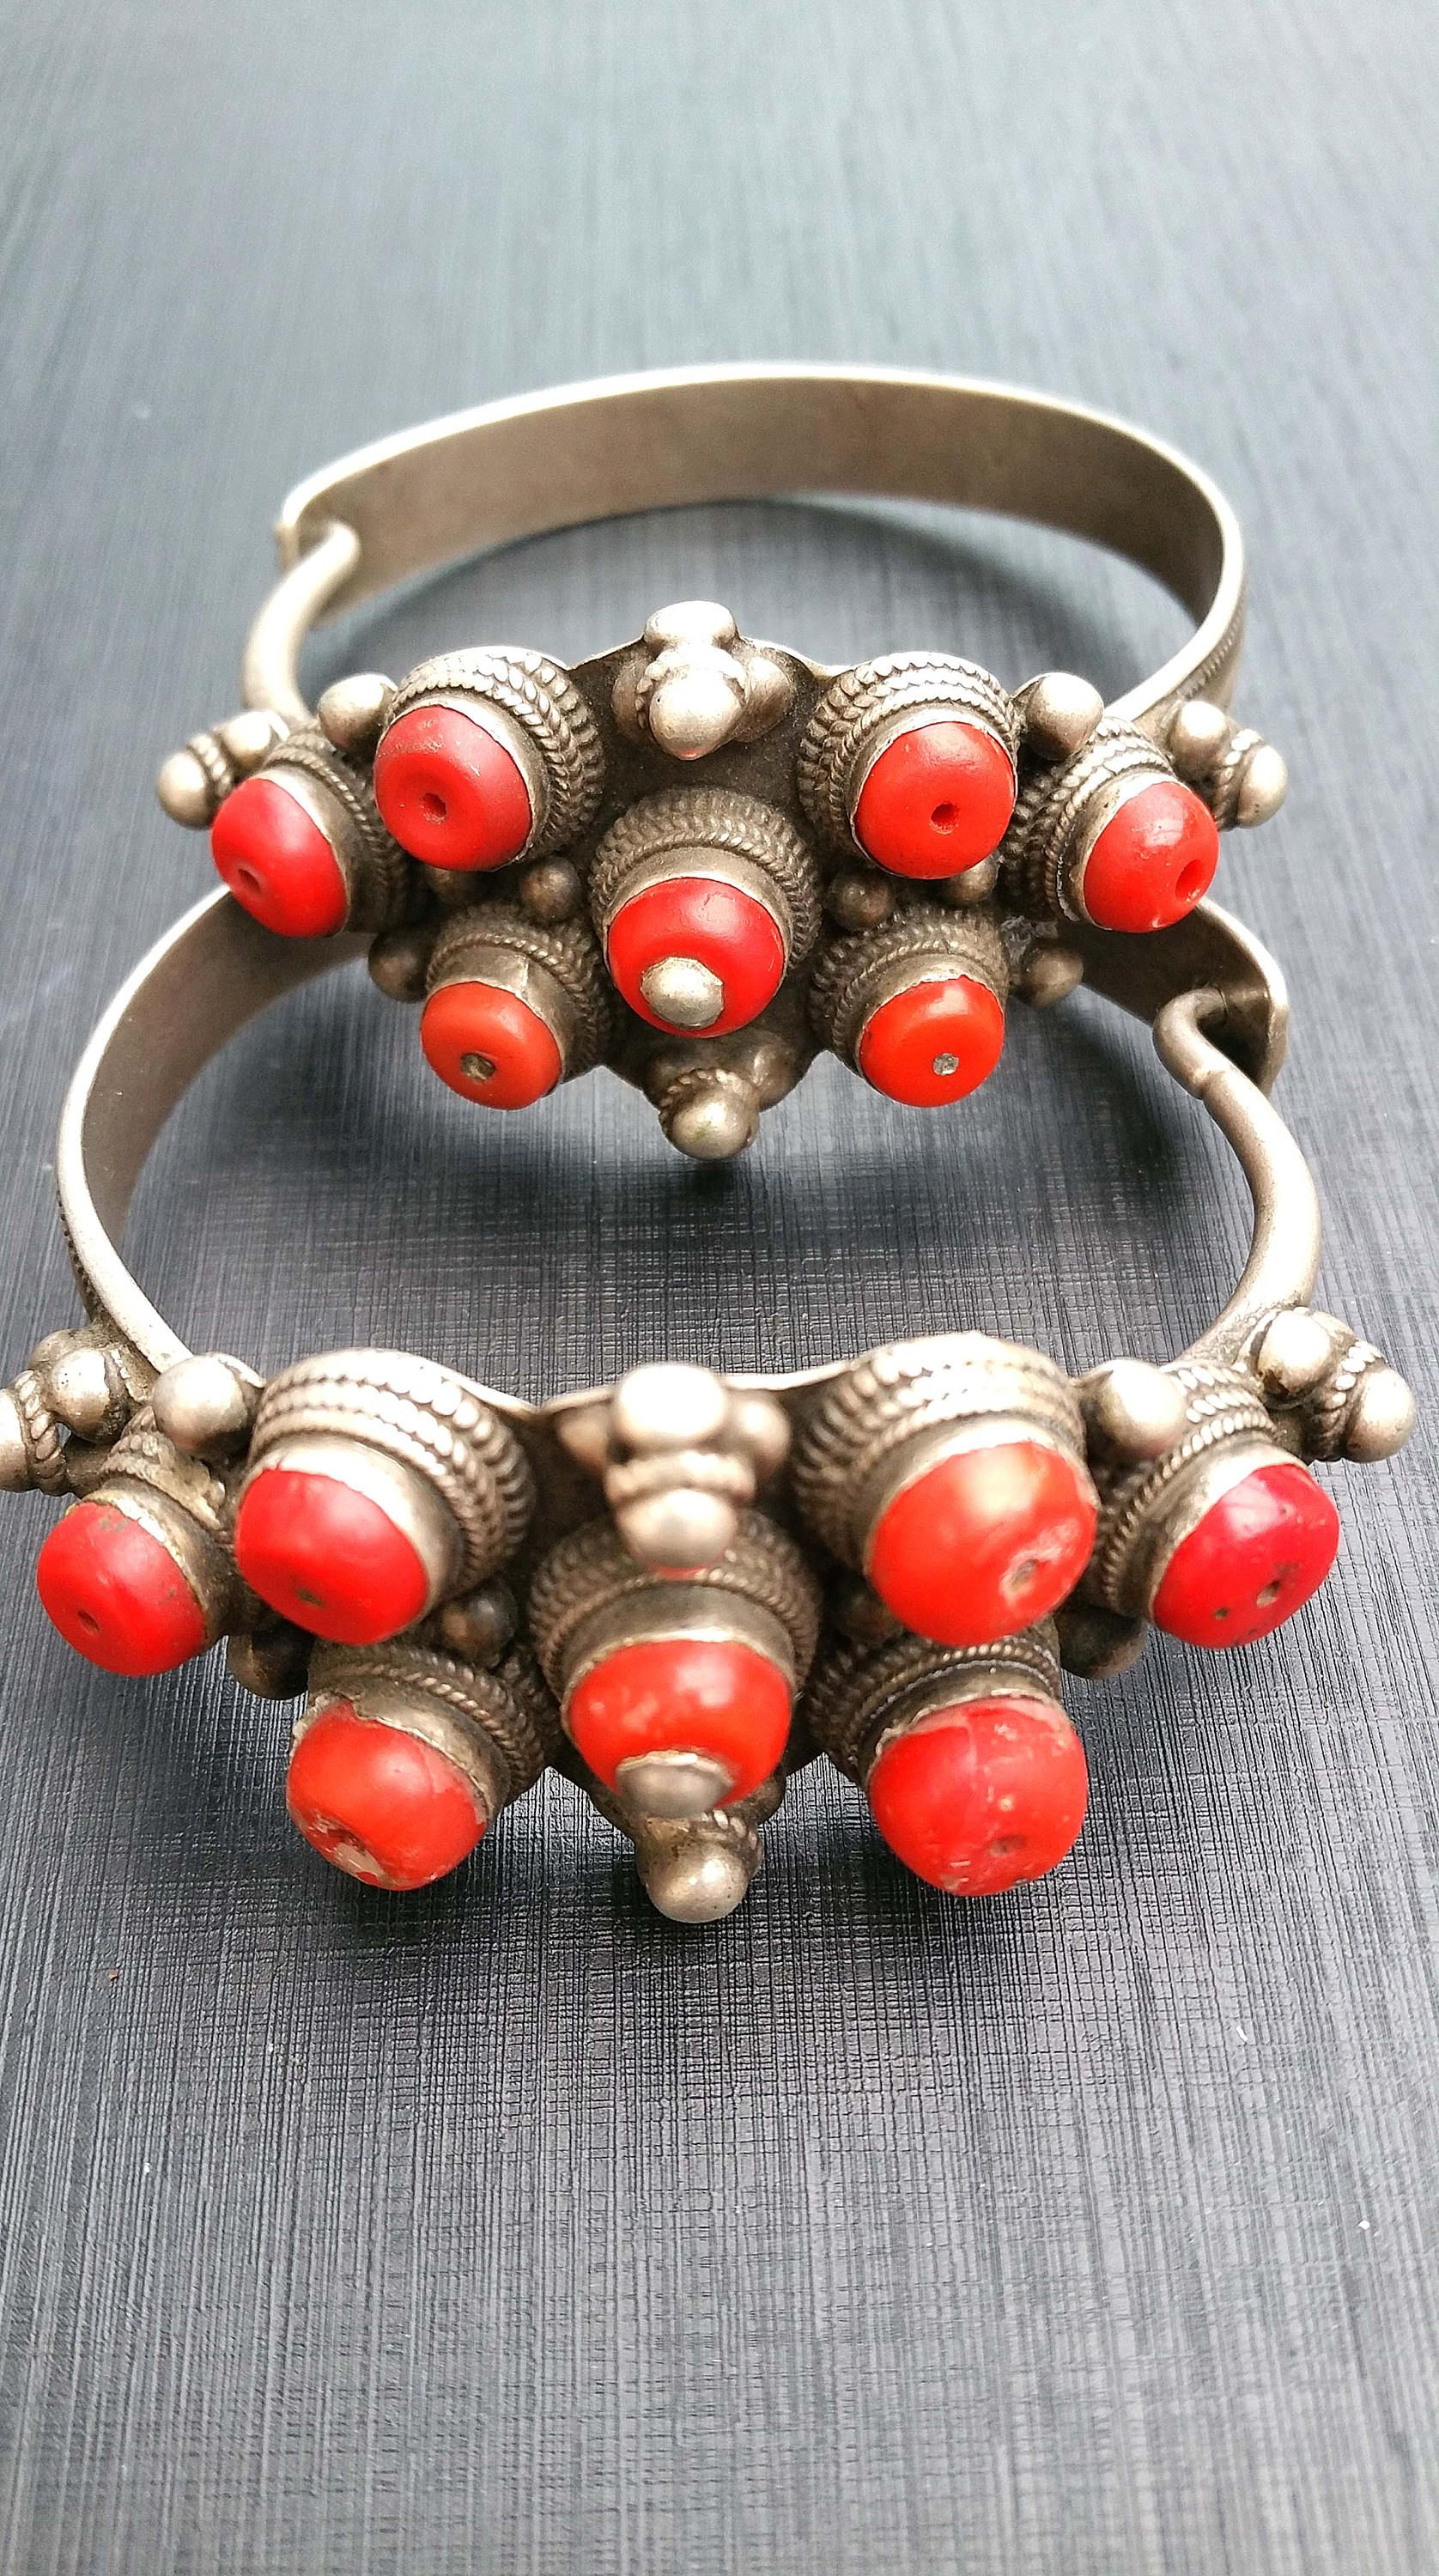 RARE! Ethnic nomad antique silver and red glass Tibetan earrings Amdo region. by tribalgallery on Etsy